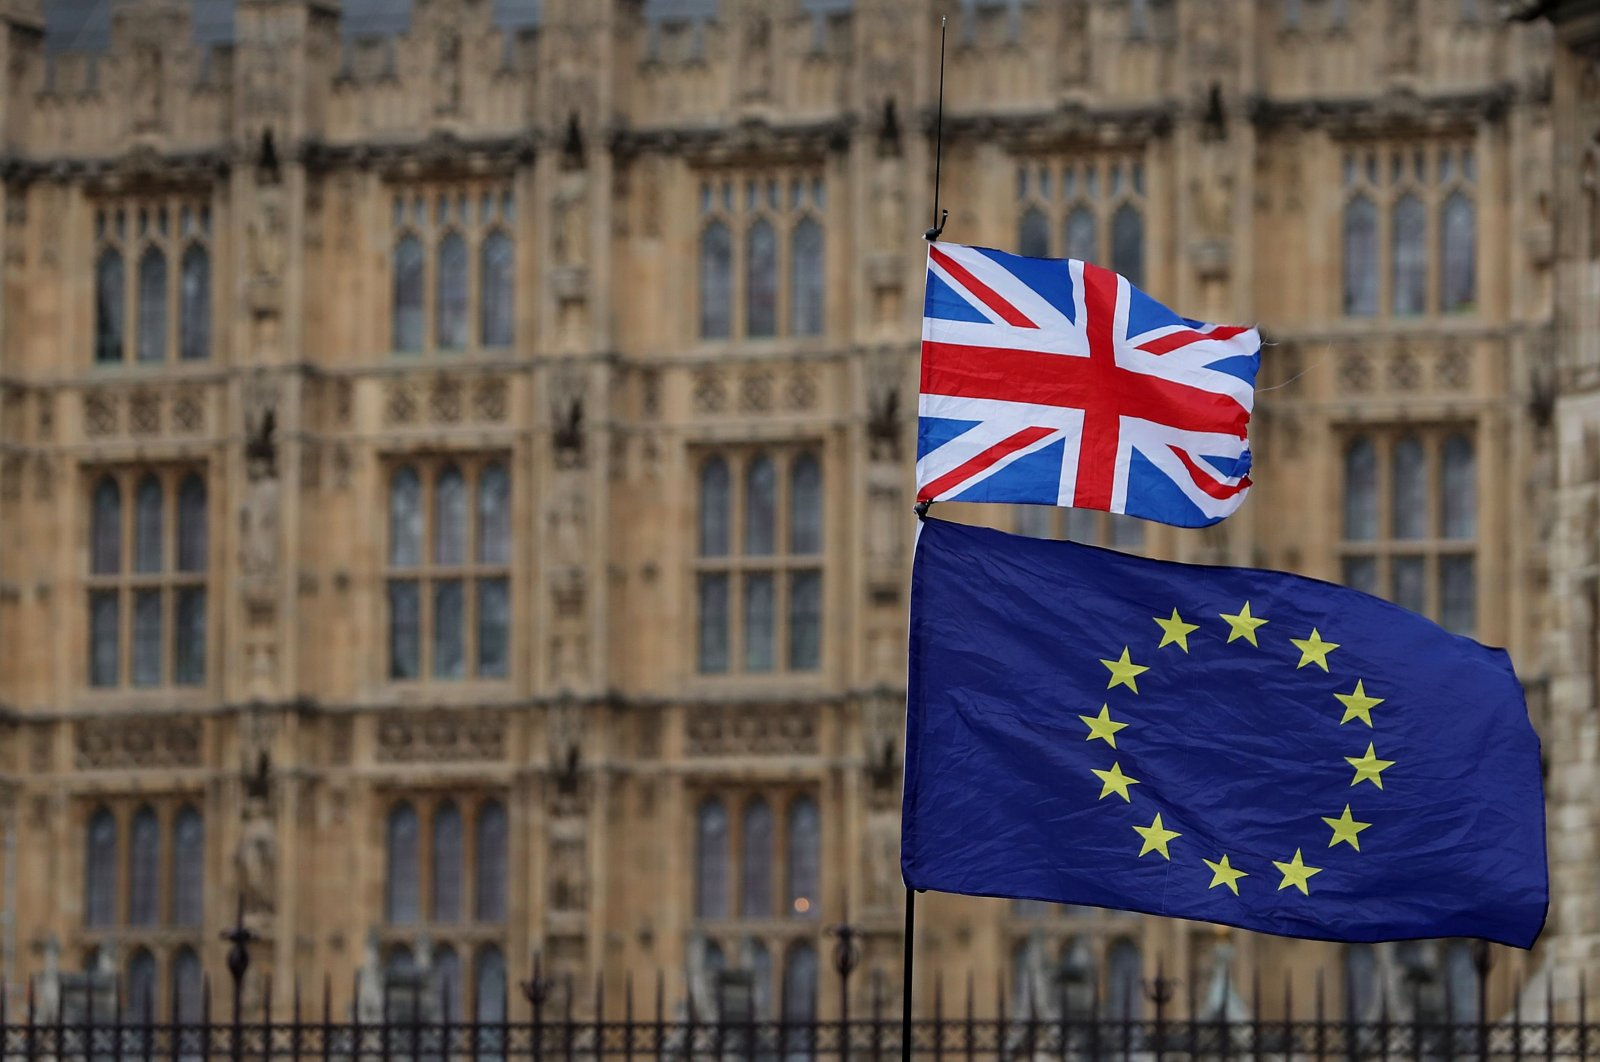 In this file photo taken on Jan. 23, 2019, an anti-Brexit activist waves Union and European Union flags as they demonstrate outside the Houses of Parliament in central London. (AFP Photo)